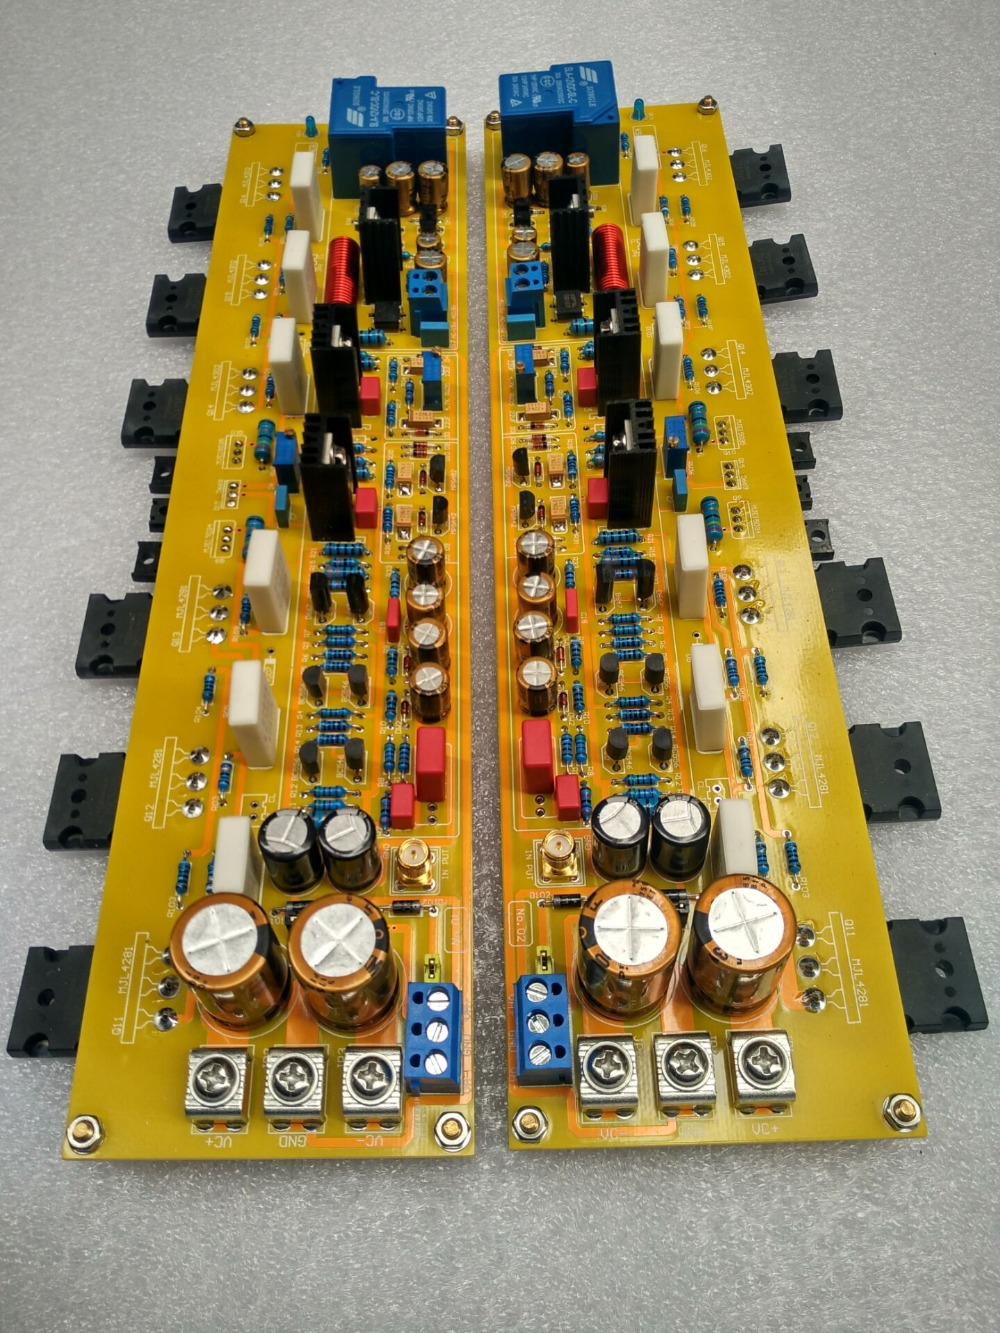 KRELL KSA50 amplifier circuit 50W 2SC5200/2SA1943 +2SC2073/2SA940 +2SC5171/2SA1930 Tube Class A Pure after class amplifier board 2sa1943 2sc5200